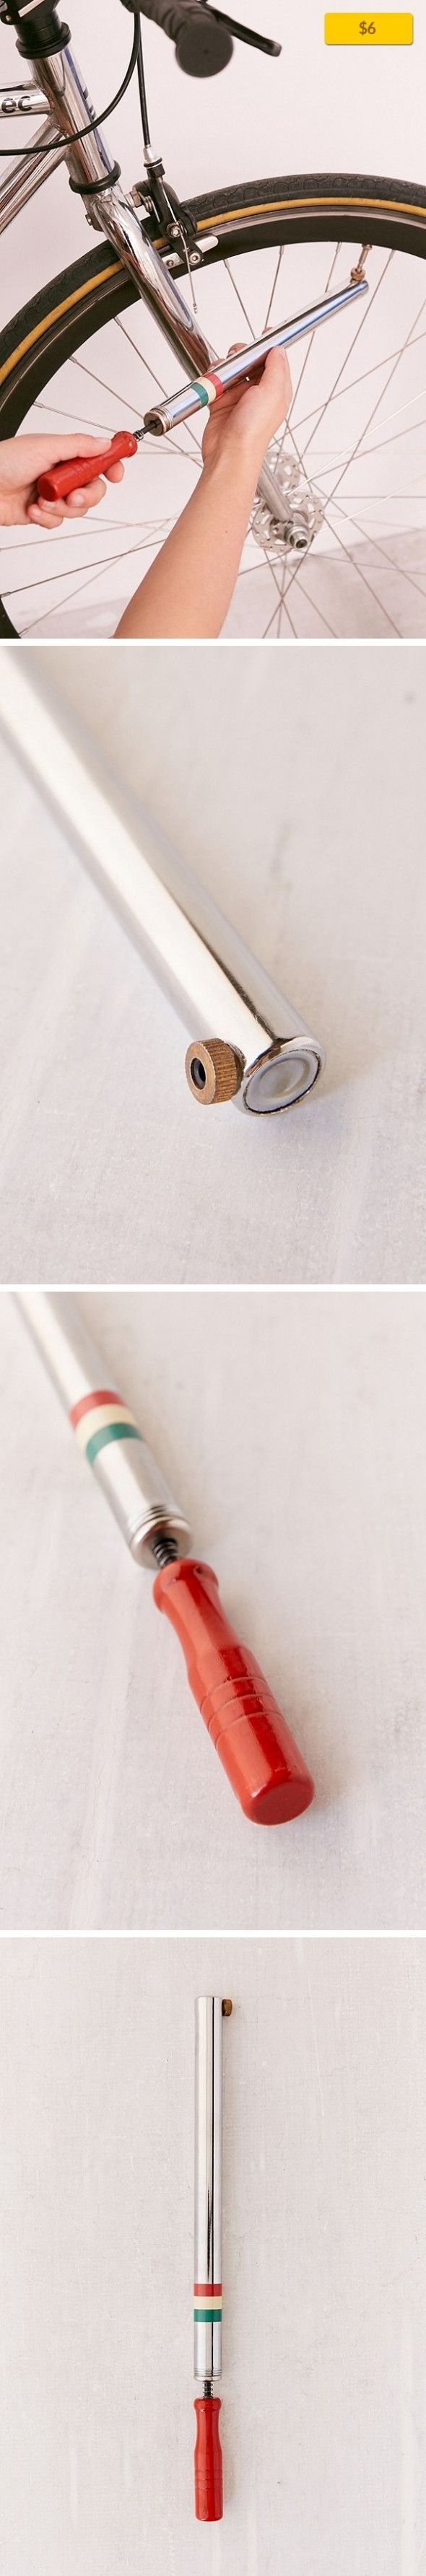 Kikkerland Design Fiests Bike Pump Apartment, Fun + Games, Novelty + Gifts   With charming vintage style + modern functionality, this slim, compact bike pump by Kikkerland Design is easy to take with you everywhere. Pack it and never worry about a flat again! Makes an exquisite gift for all the cyclists in your life. Pumps up to 90psi. Content + Care - VDP-coated aluminum alloy - Wipe clean - Impo...